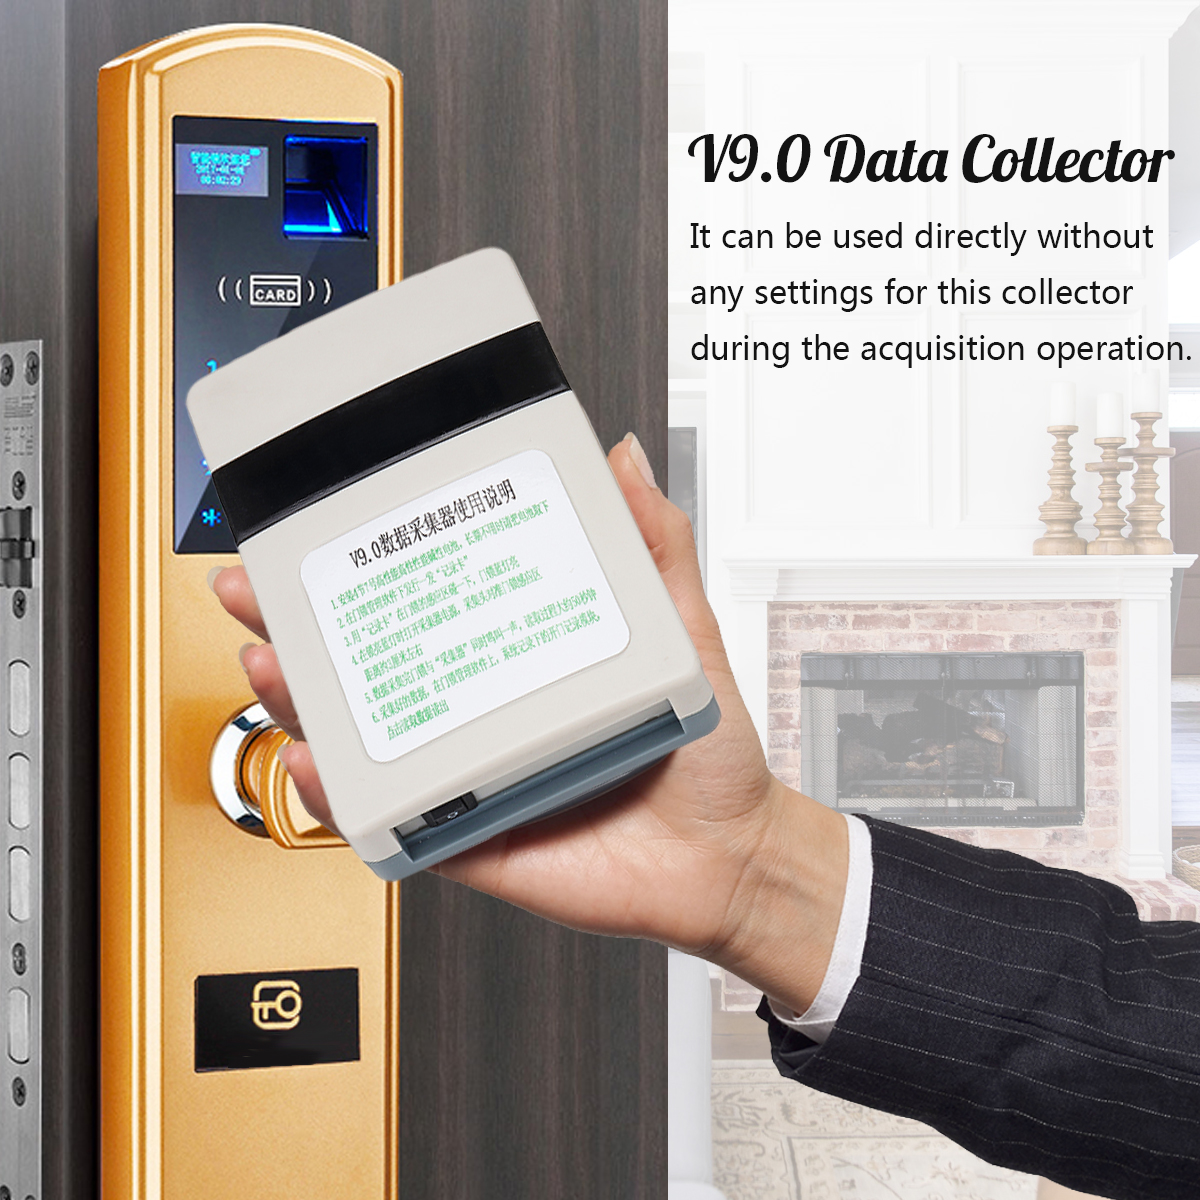 Card Lock Managment System Reader V9.0 Data Collector Hotel For T5557 Smart Card Intelligent Setting Record USB IdentificationCard Lock Managment System Reader V9.0 Data Collector Hotel For T5557 Smart Card Intelligent Setting Record USB Identification